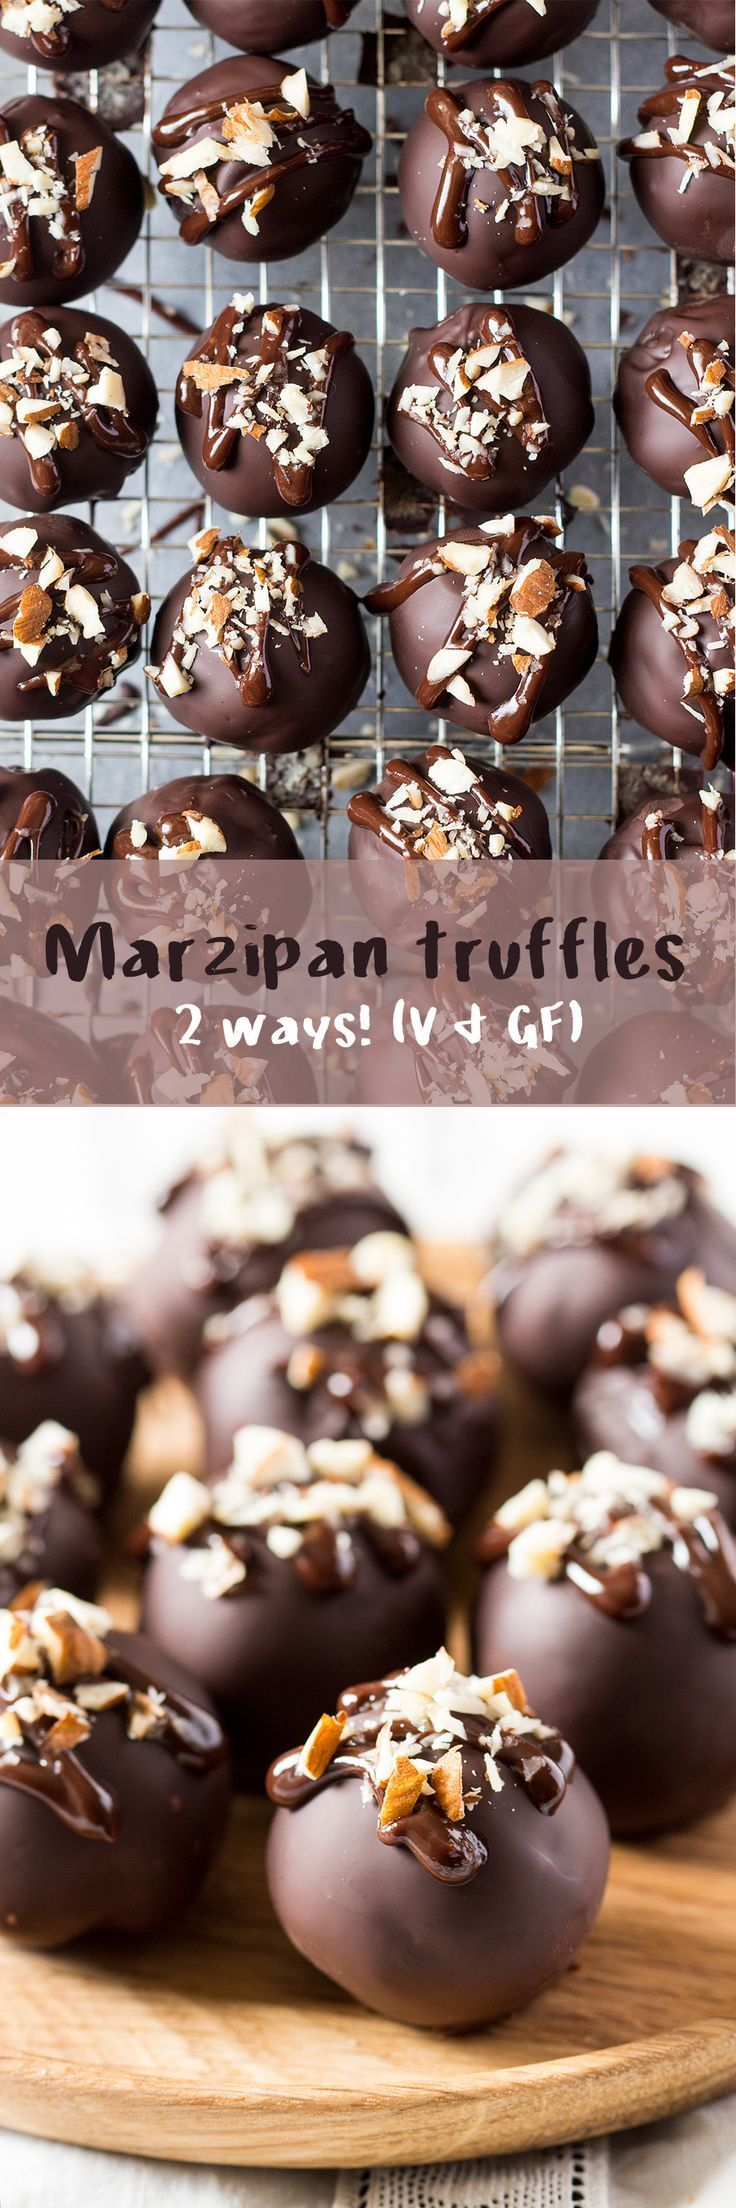 These #marzipan #truffles are #easy to make and come in two varieties, including refinedsugarfree one. They're naturally vegan and glutenfree too!